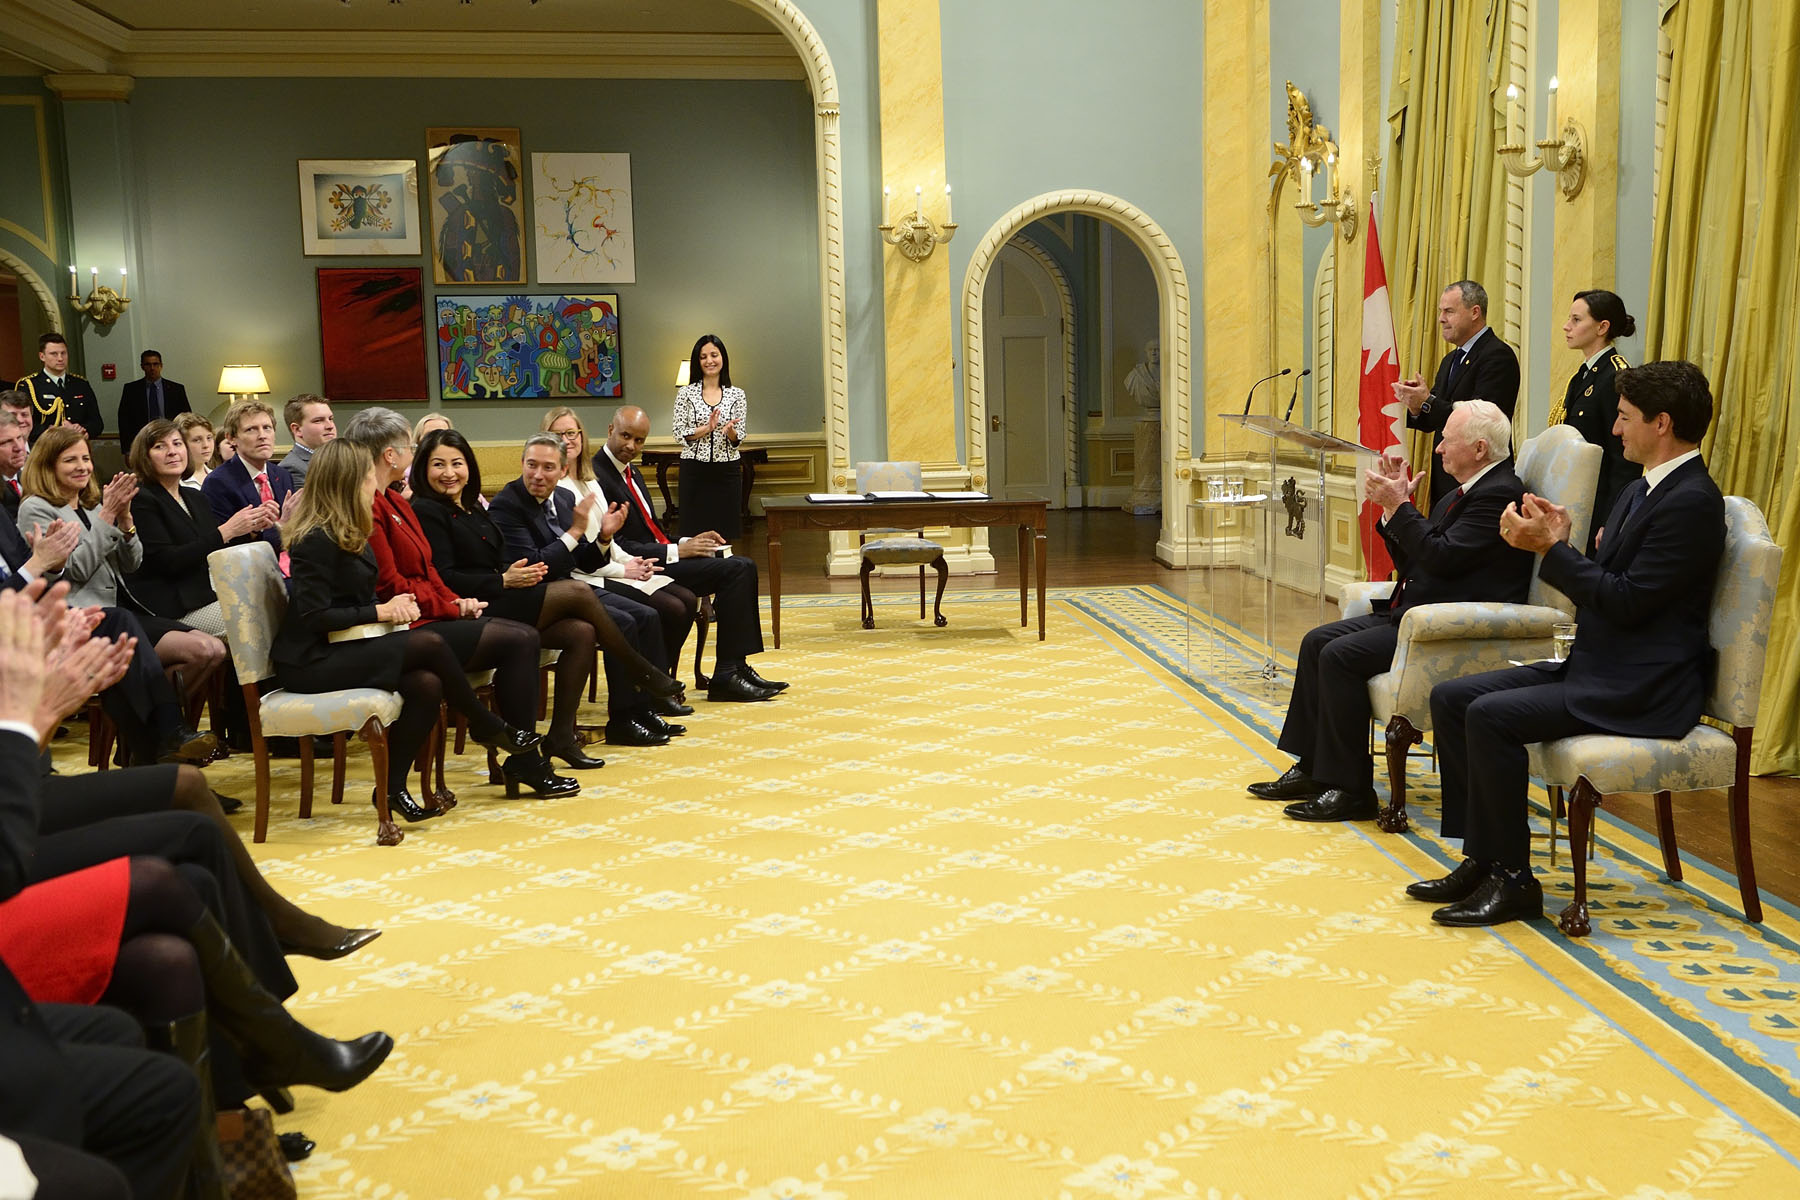 His Excellency the Right Honourable David Johnston, Governor General of Canada, preside over a swearing-in ceremony on Tuesday, January 10, 2017 at Rideau Hall.